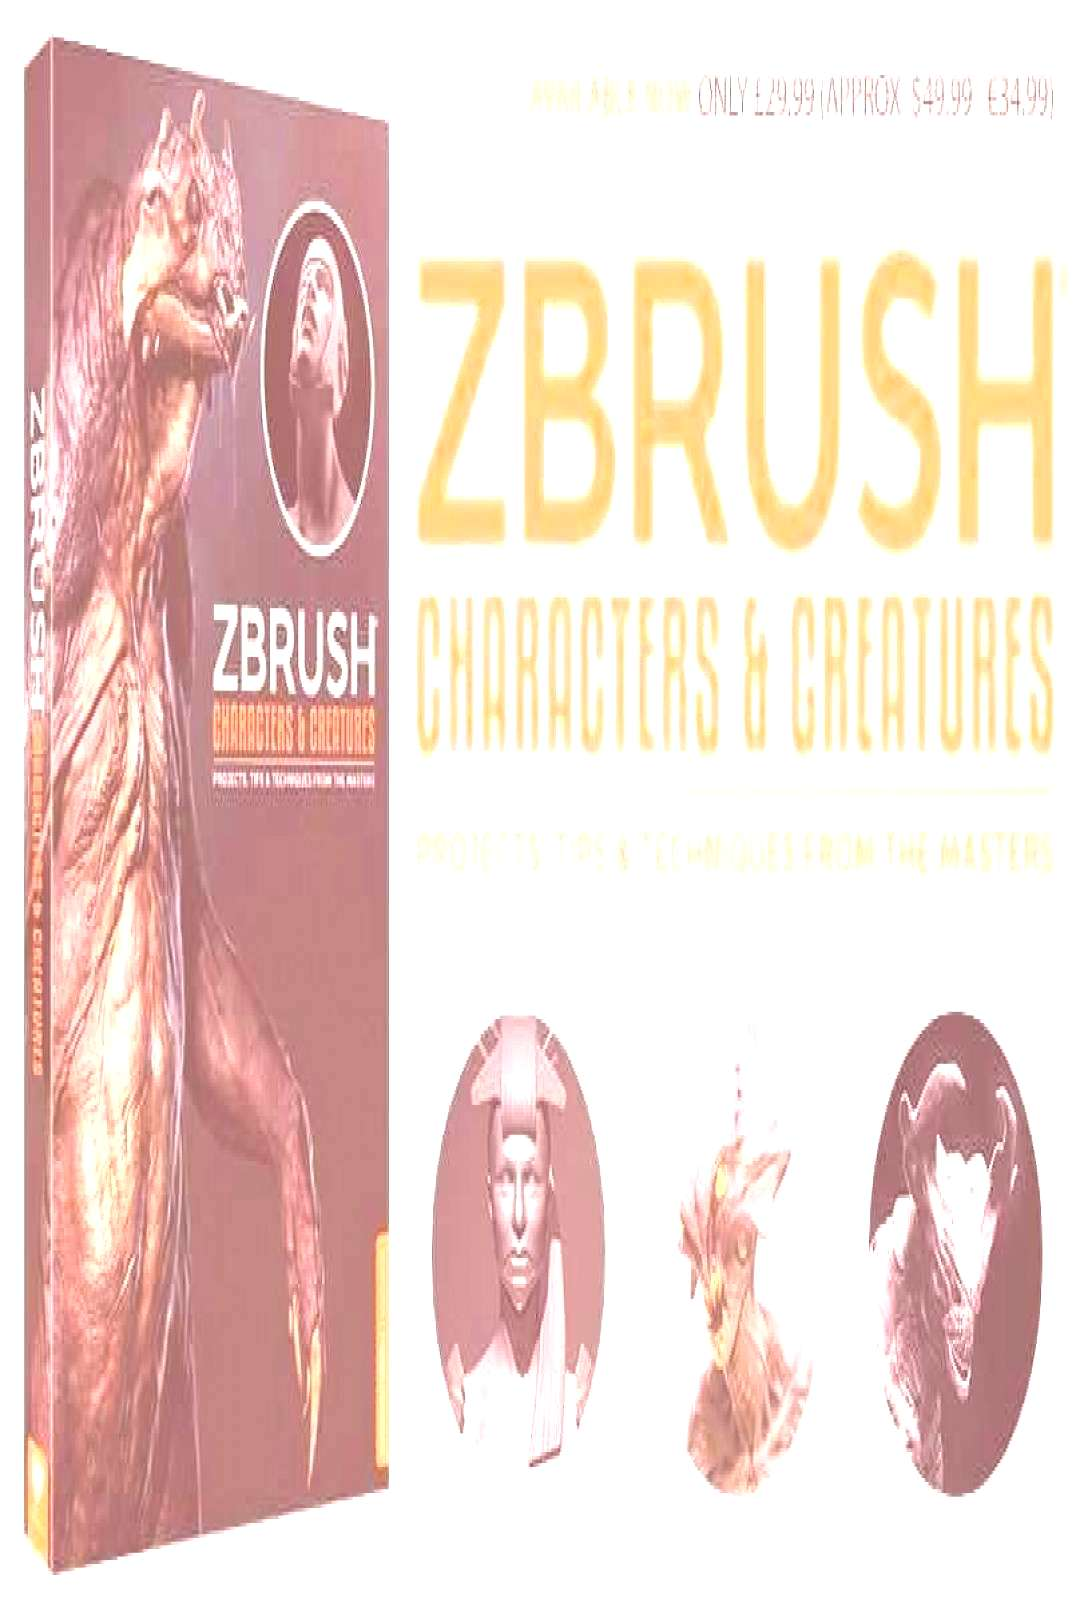 Zbrush Characters Virtual reality - -You can find Zbrush and more on our ...You can find Zbrush and